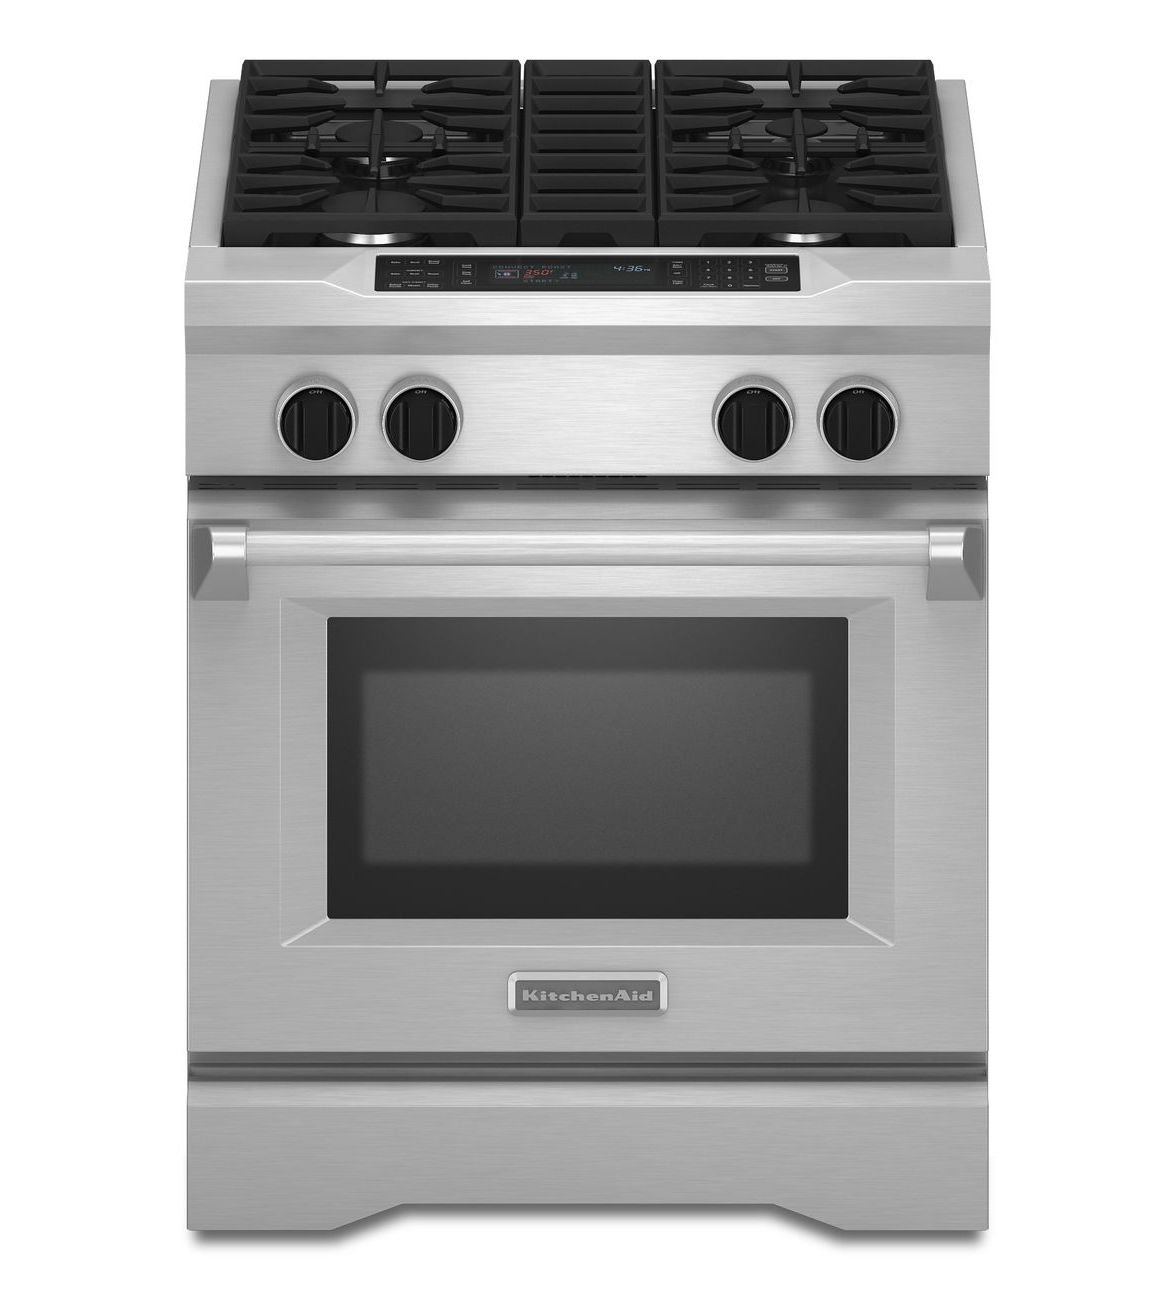 Merveilleux Amazon.com: Kitchenaid KDRS407VSS Commercial Style Dual Fuel Range:  Appliances